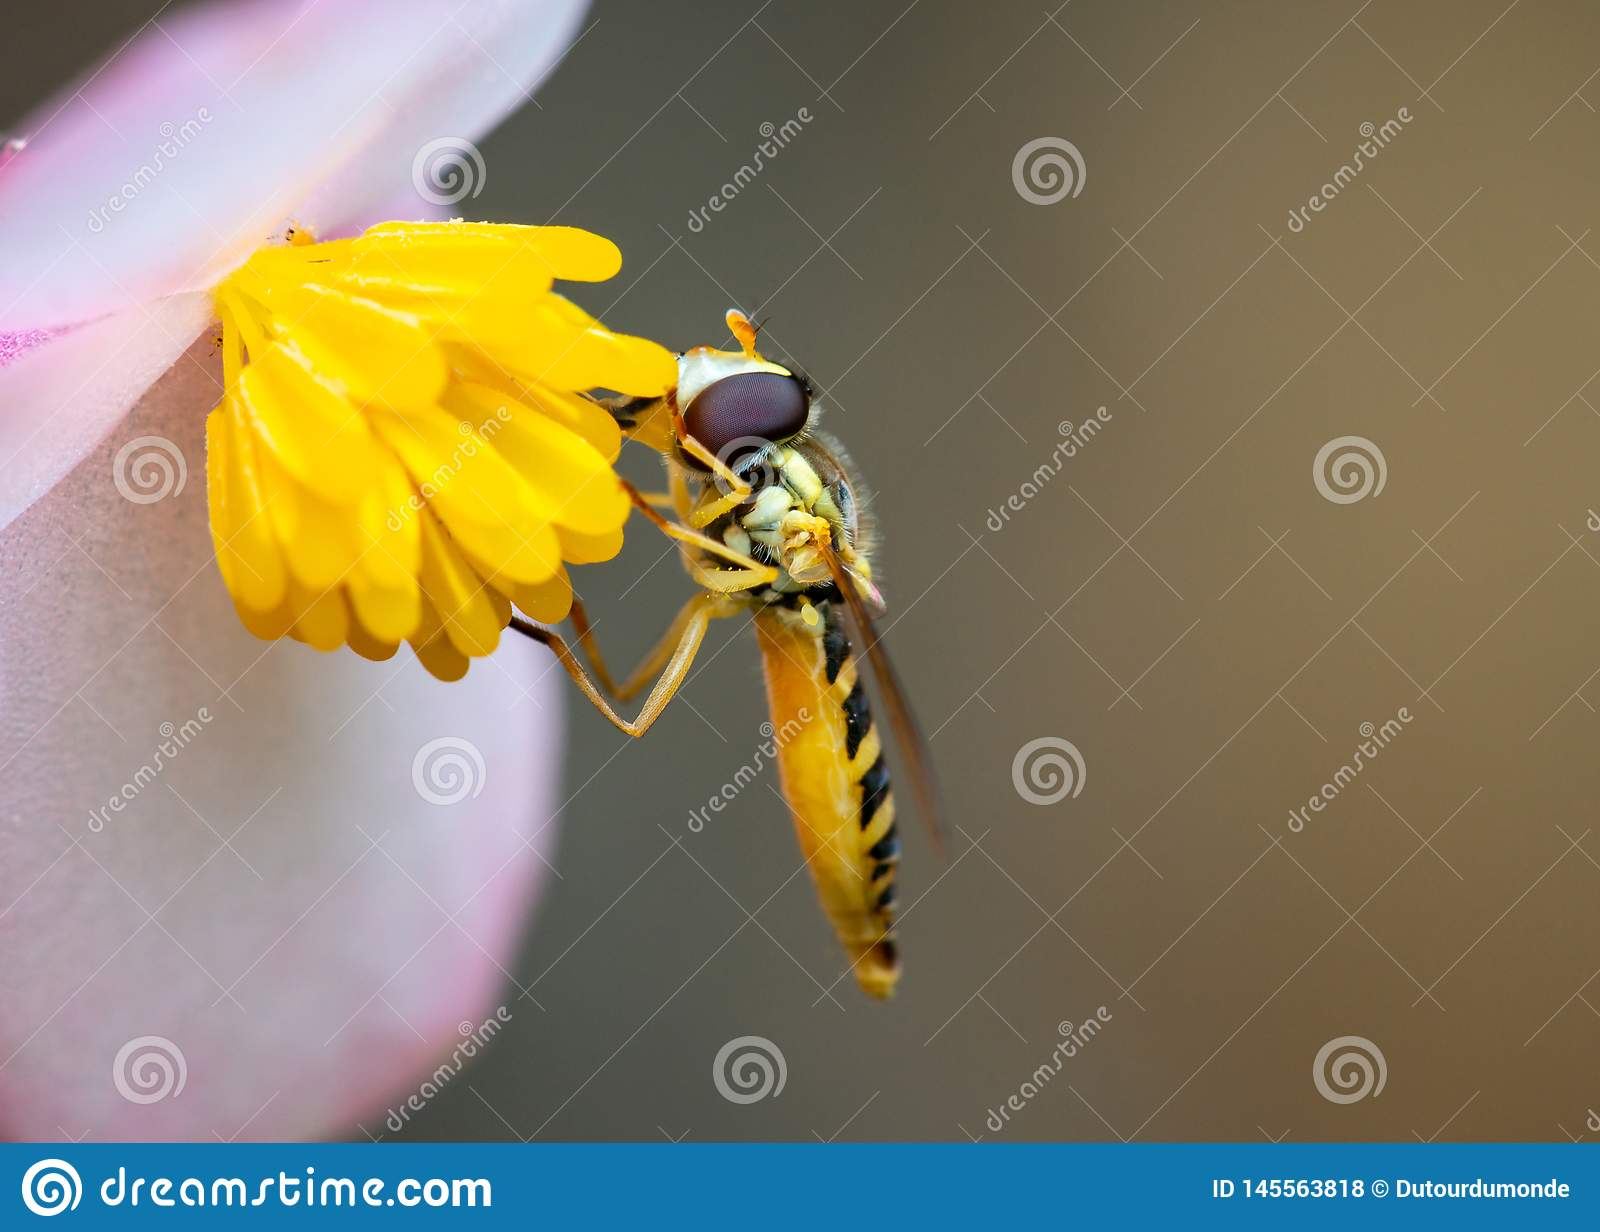 Marmalade hoverfly eating pollen